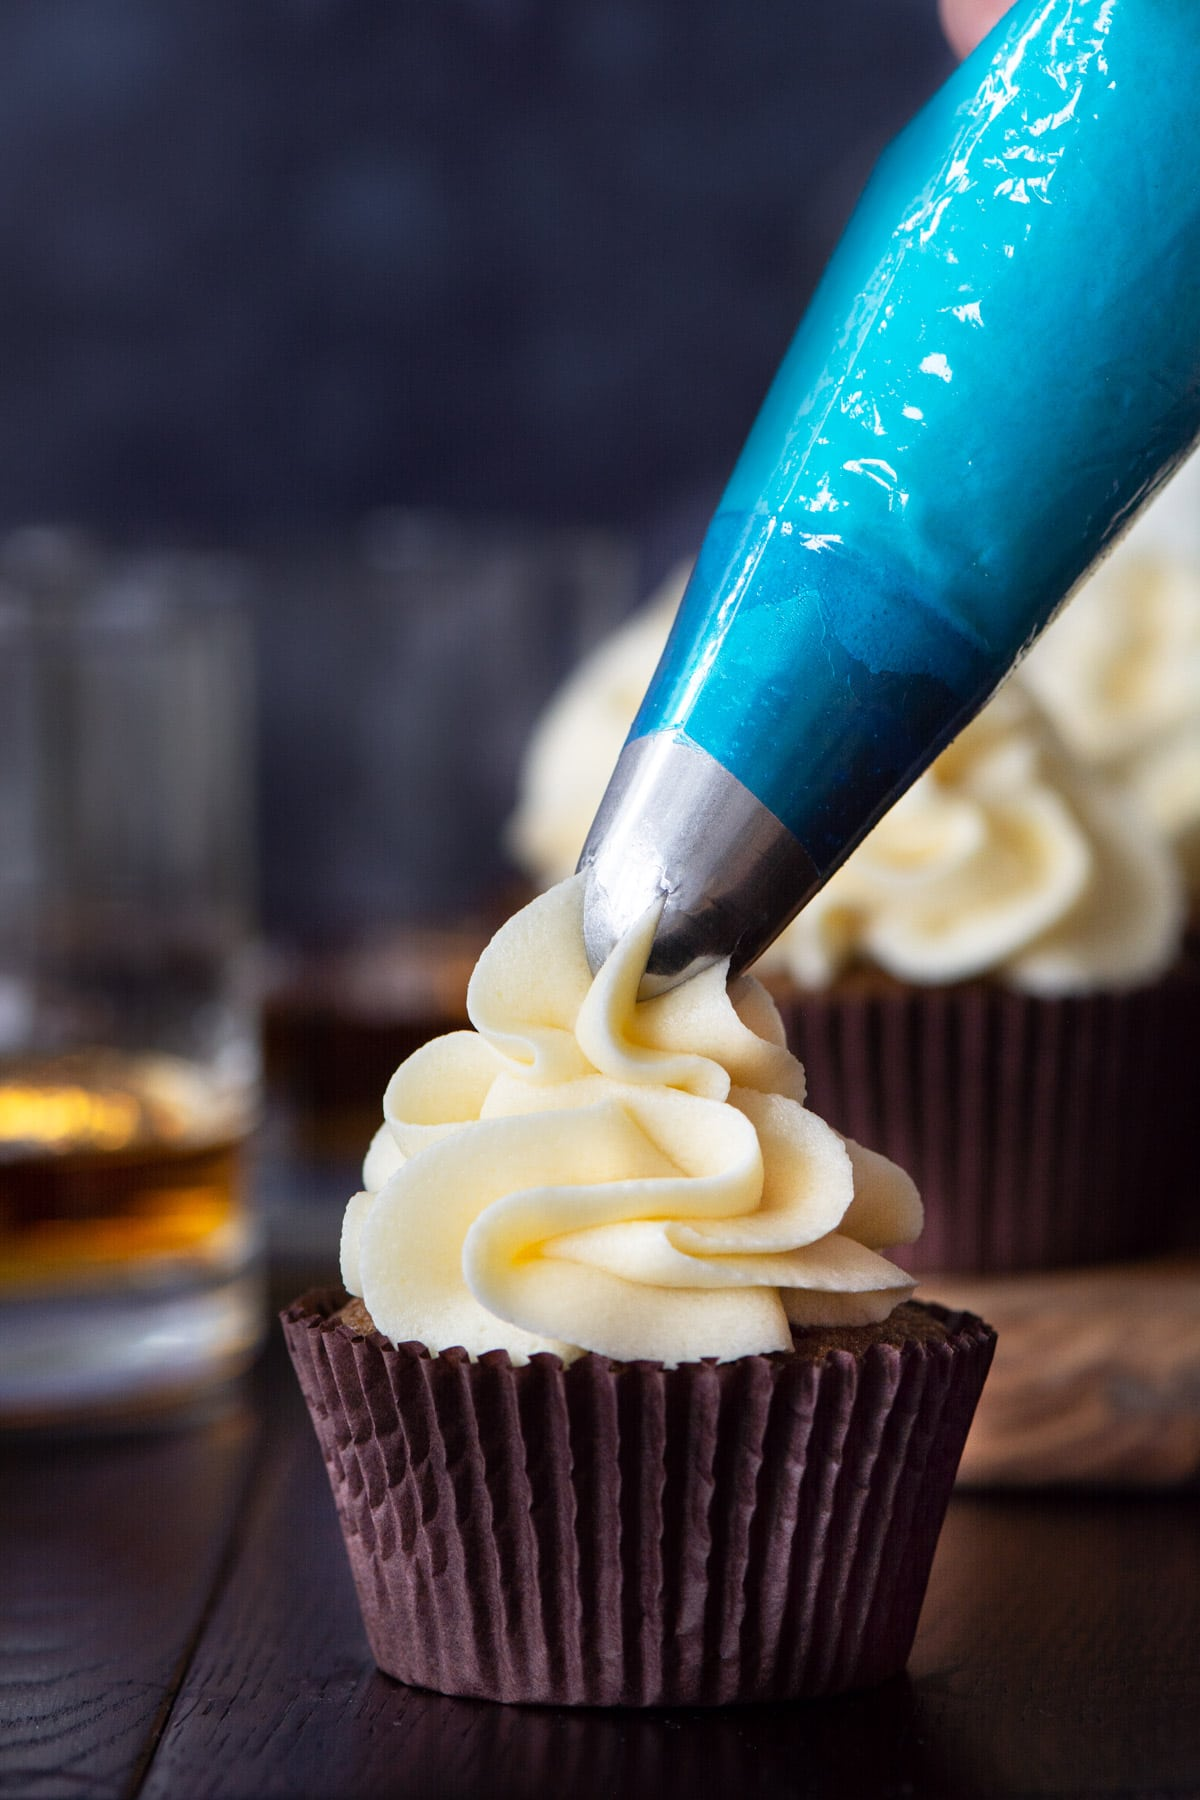 Whiskey buttercream being piped onto a cupcake.